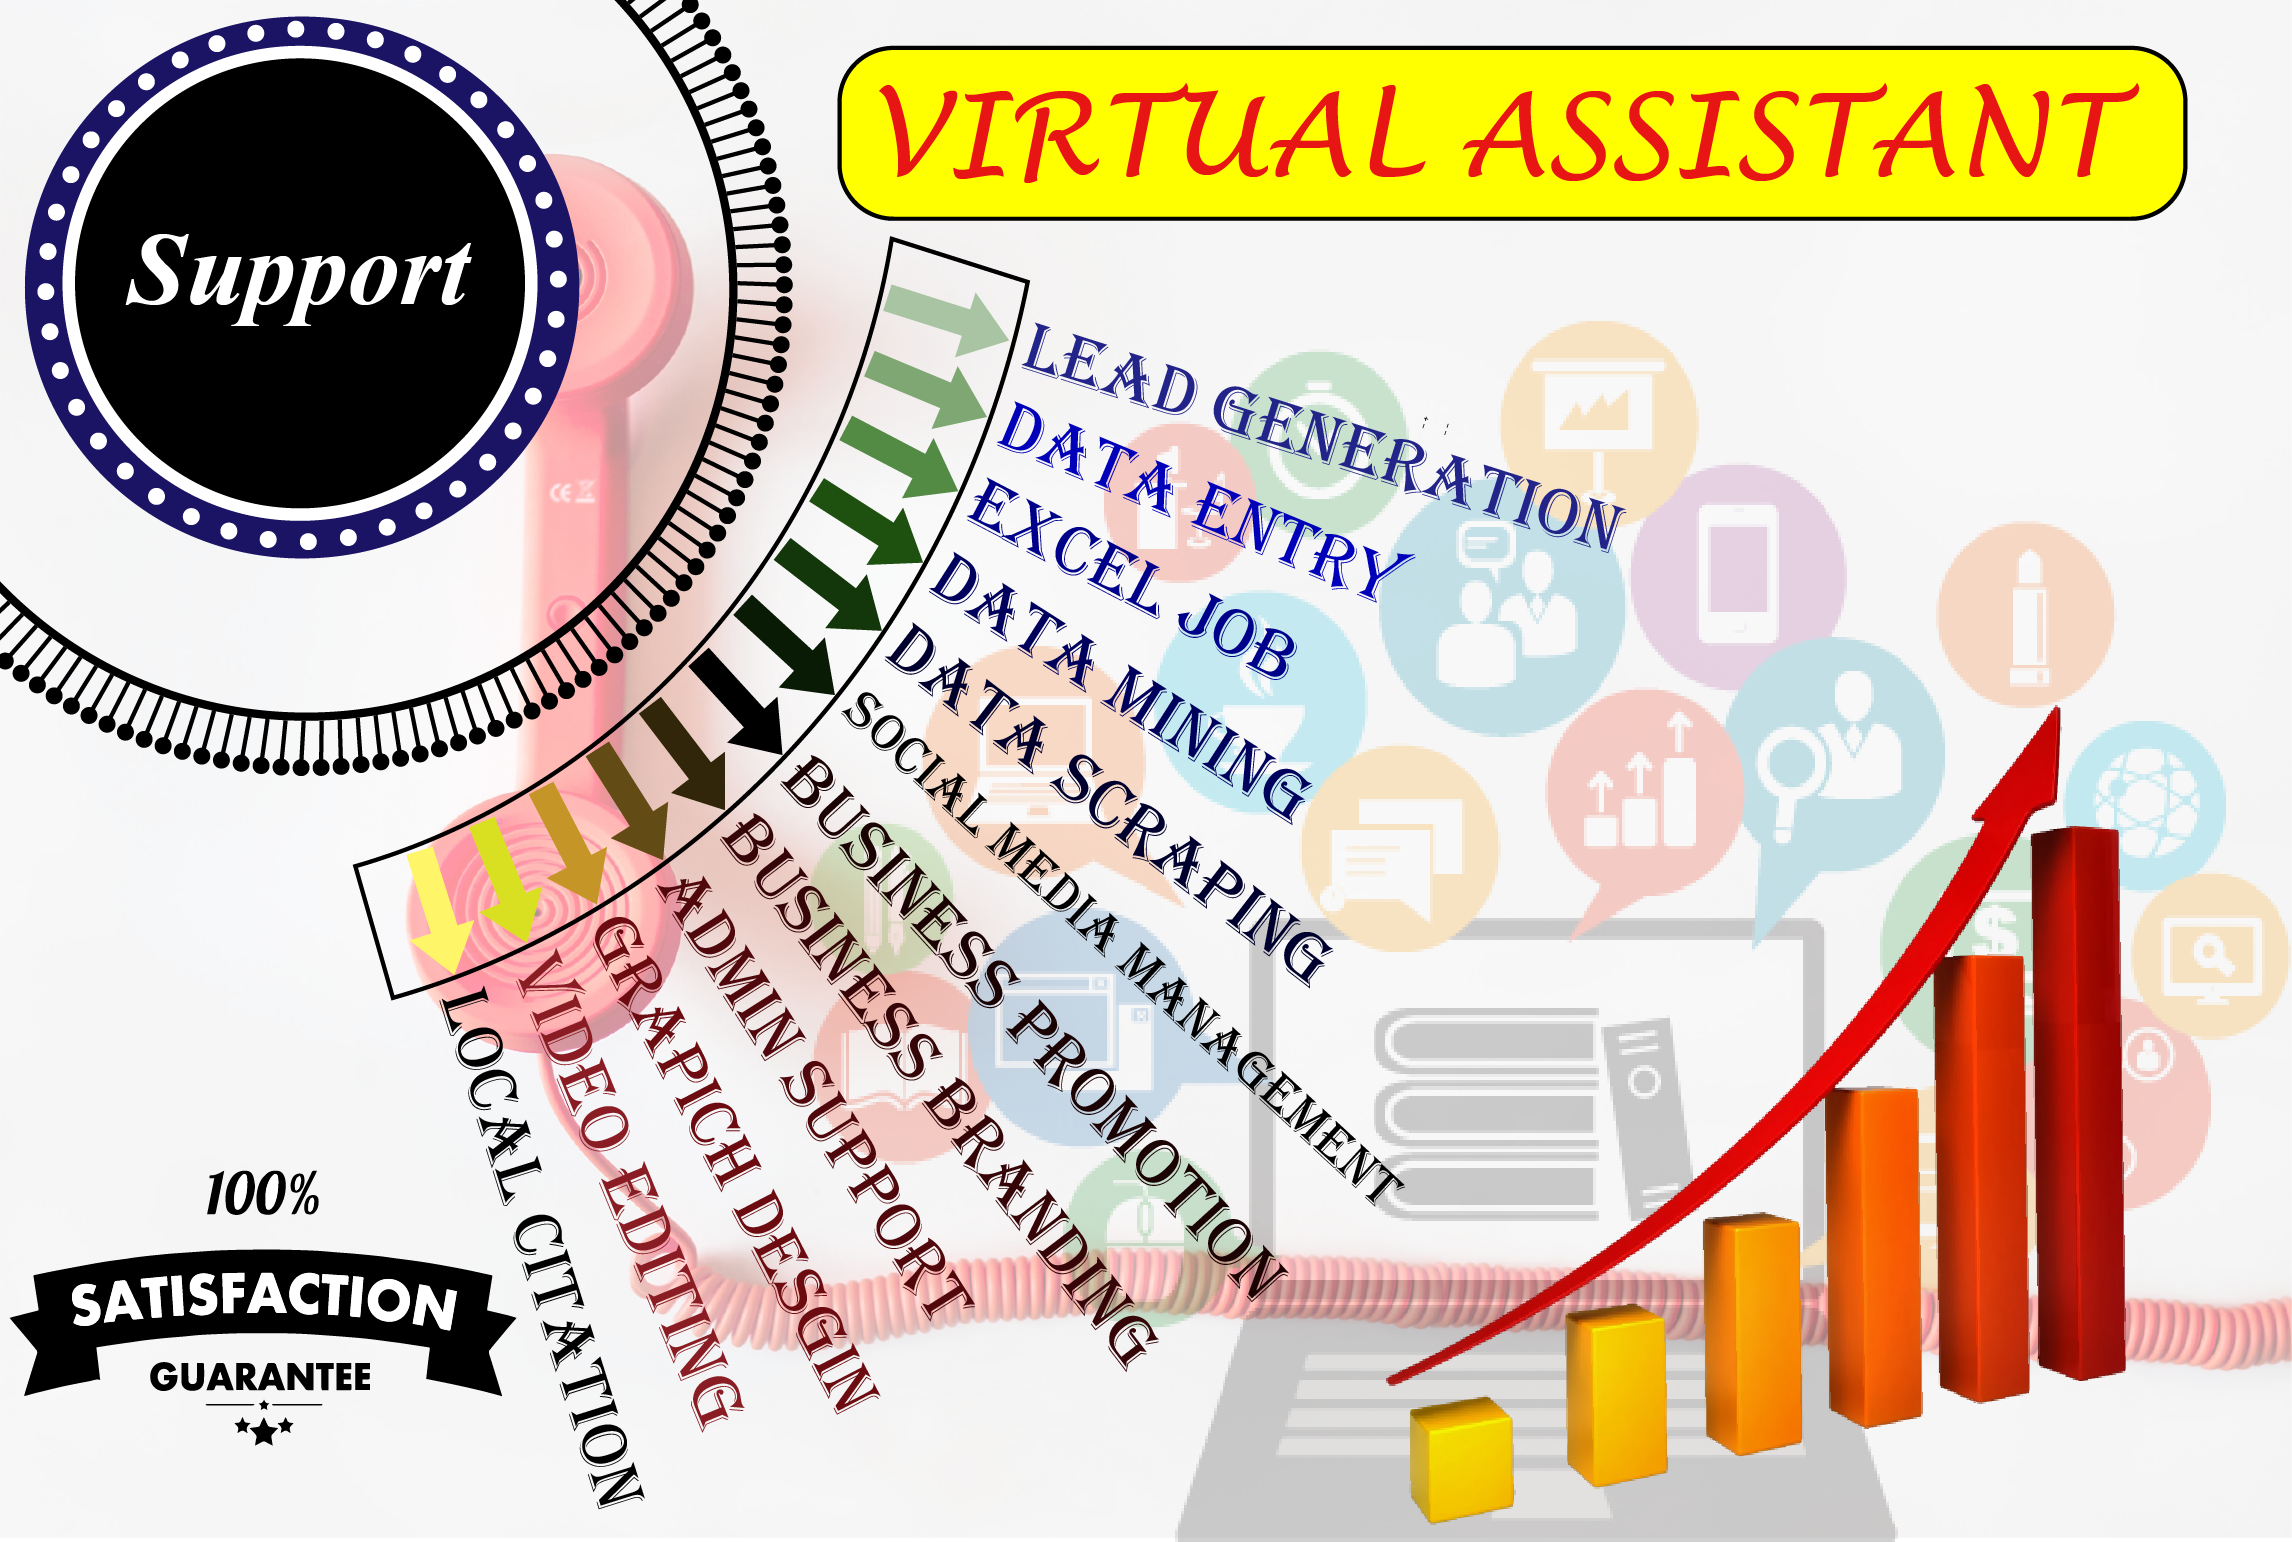 If You need a Virtual Assistant then I am so much interested work for you.